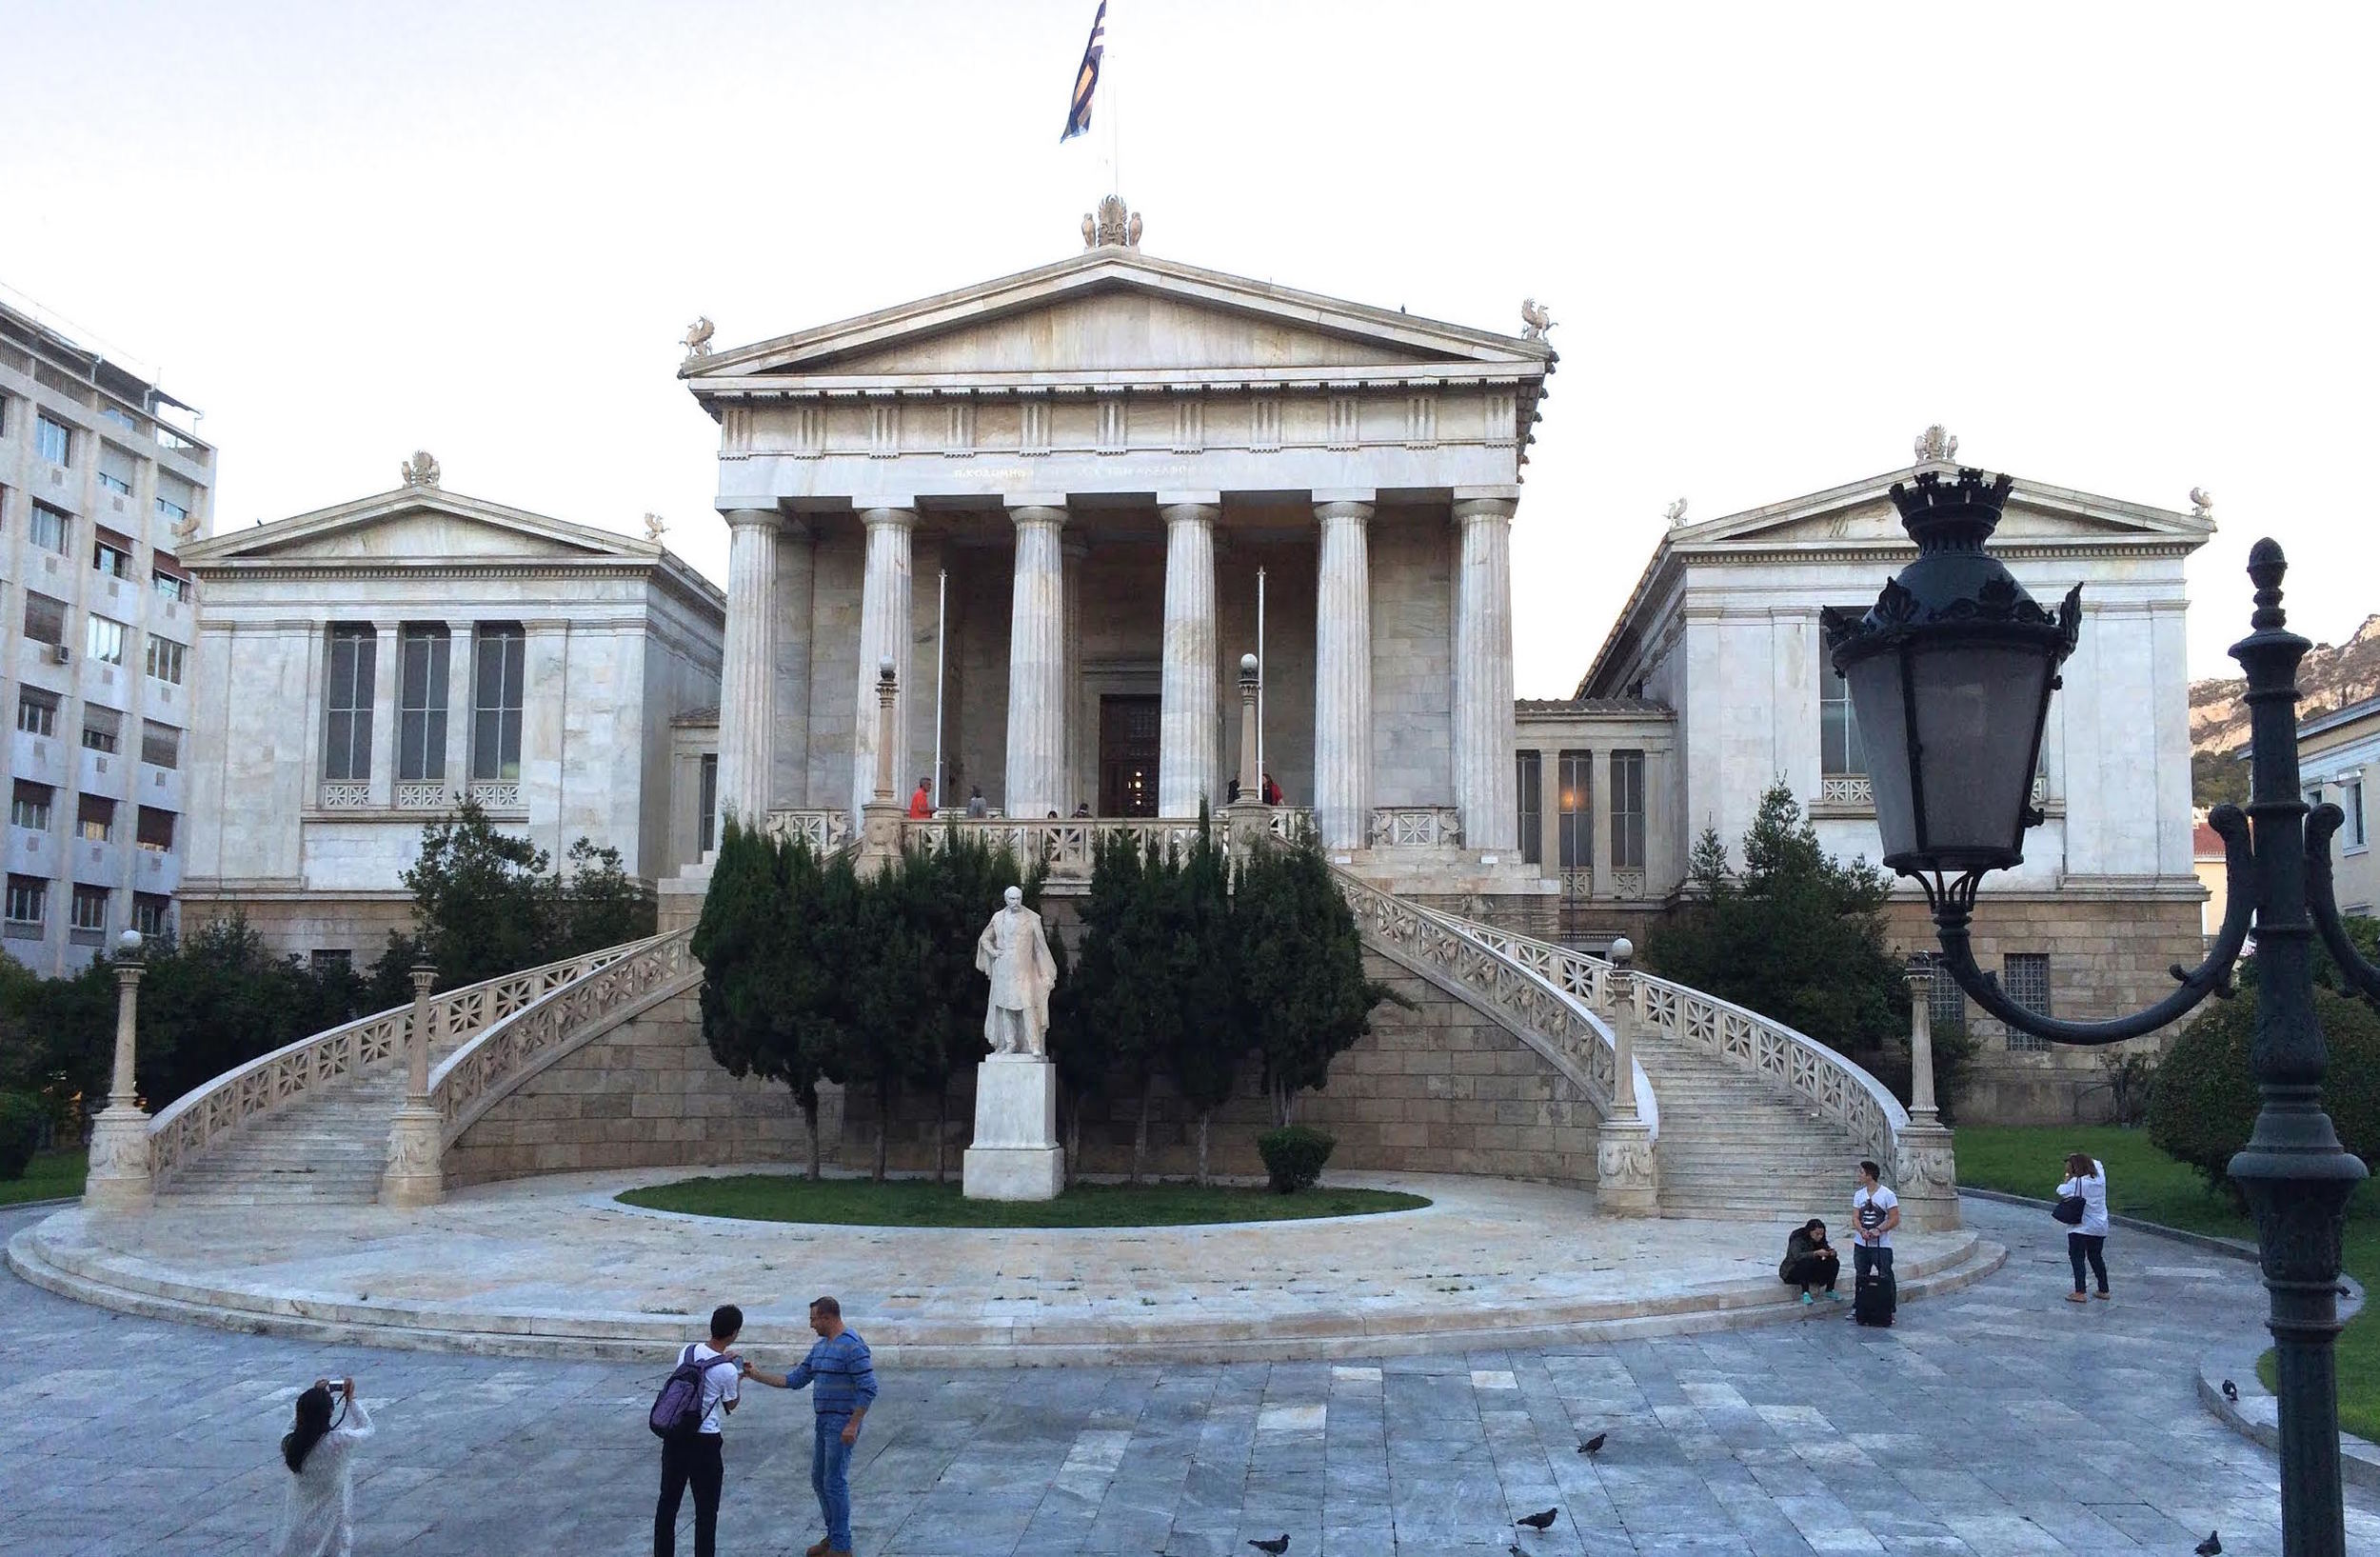 A trilogy of neoclassical buildings that were originally the location of Athens University. Today it is the National Library of Greece.